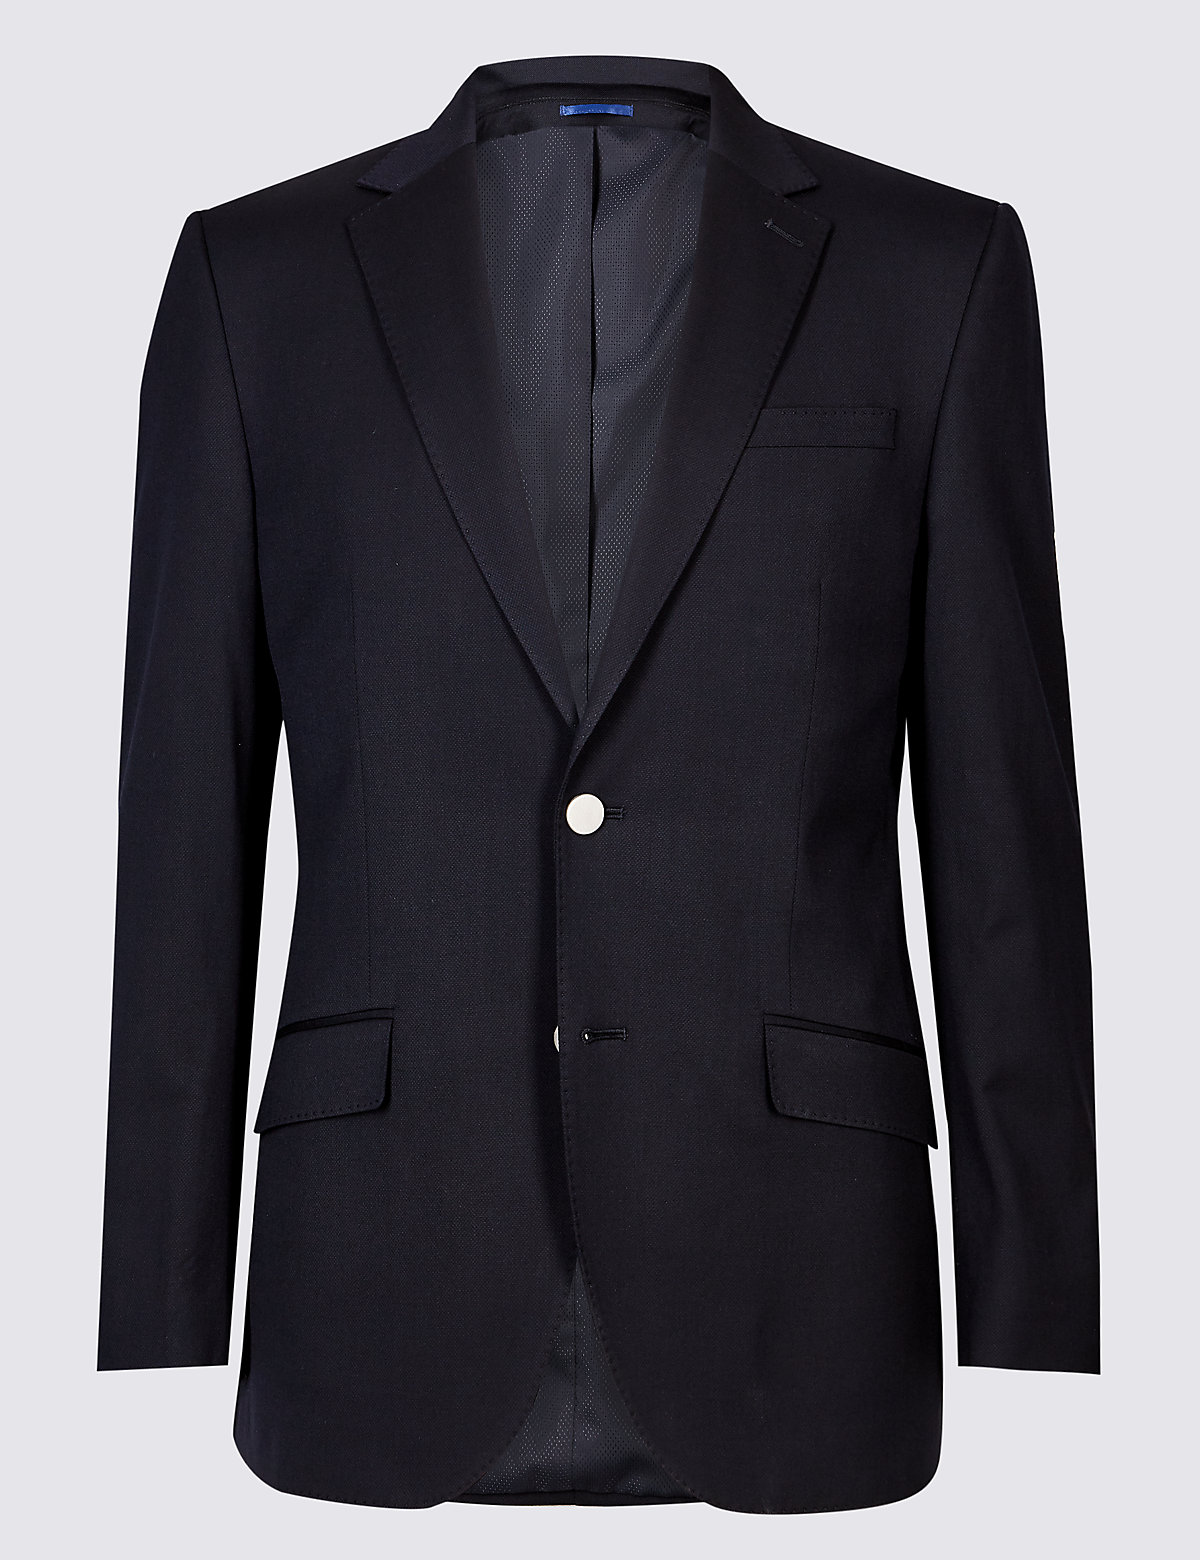 Marks & Spencer Navy Big & Tall Textured Regular Fit Jacket